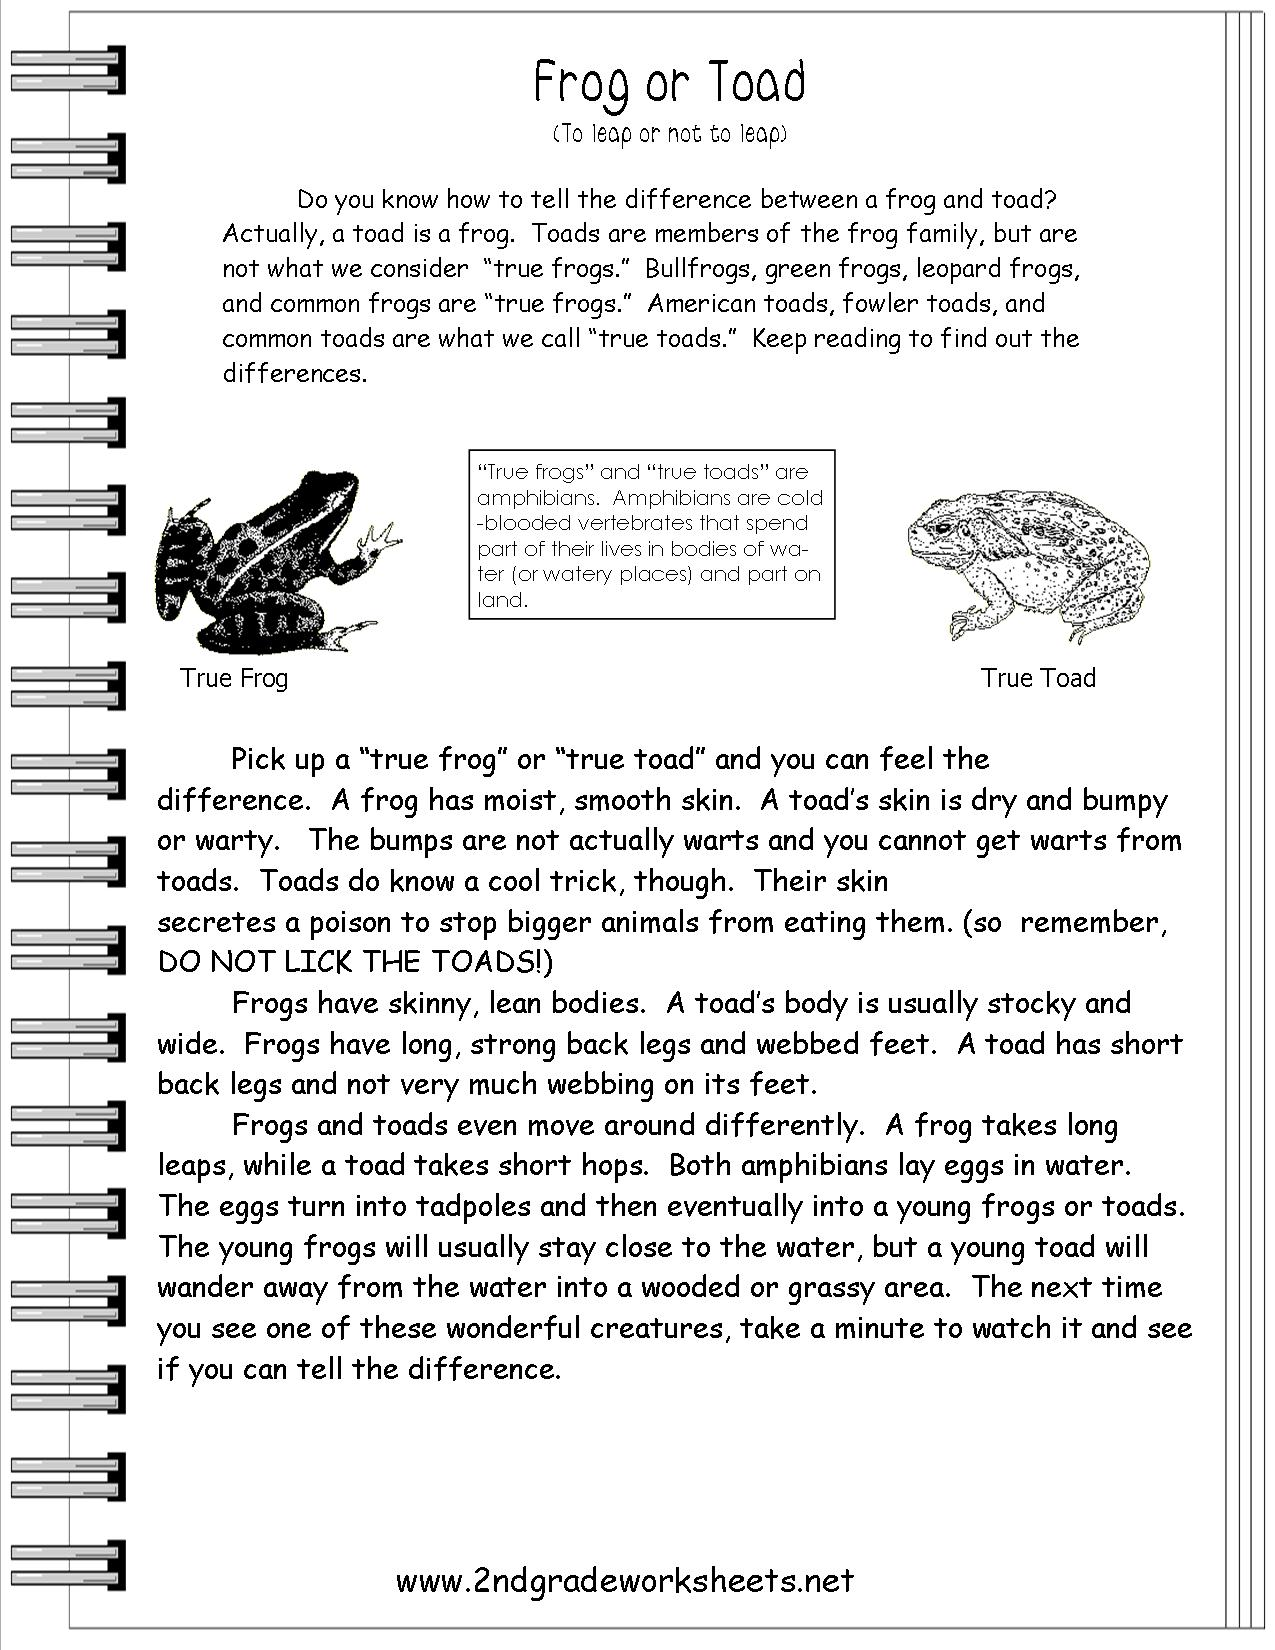 31 Informational Text Features Worksheet